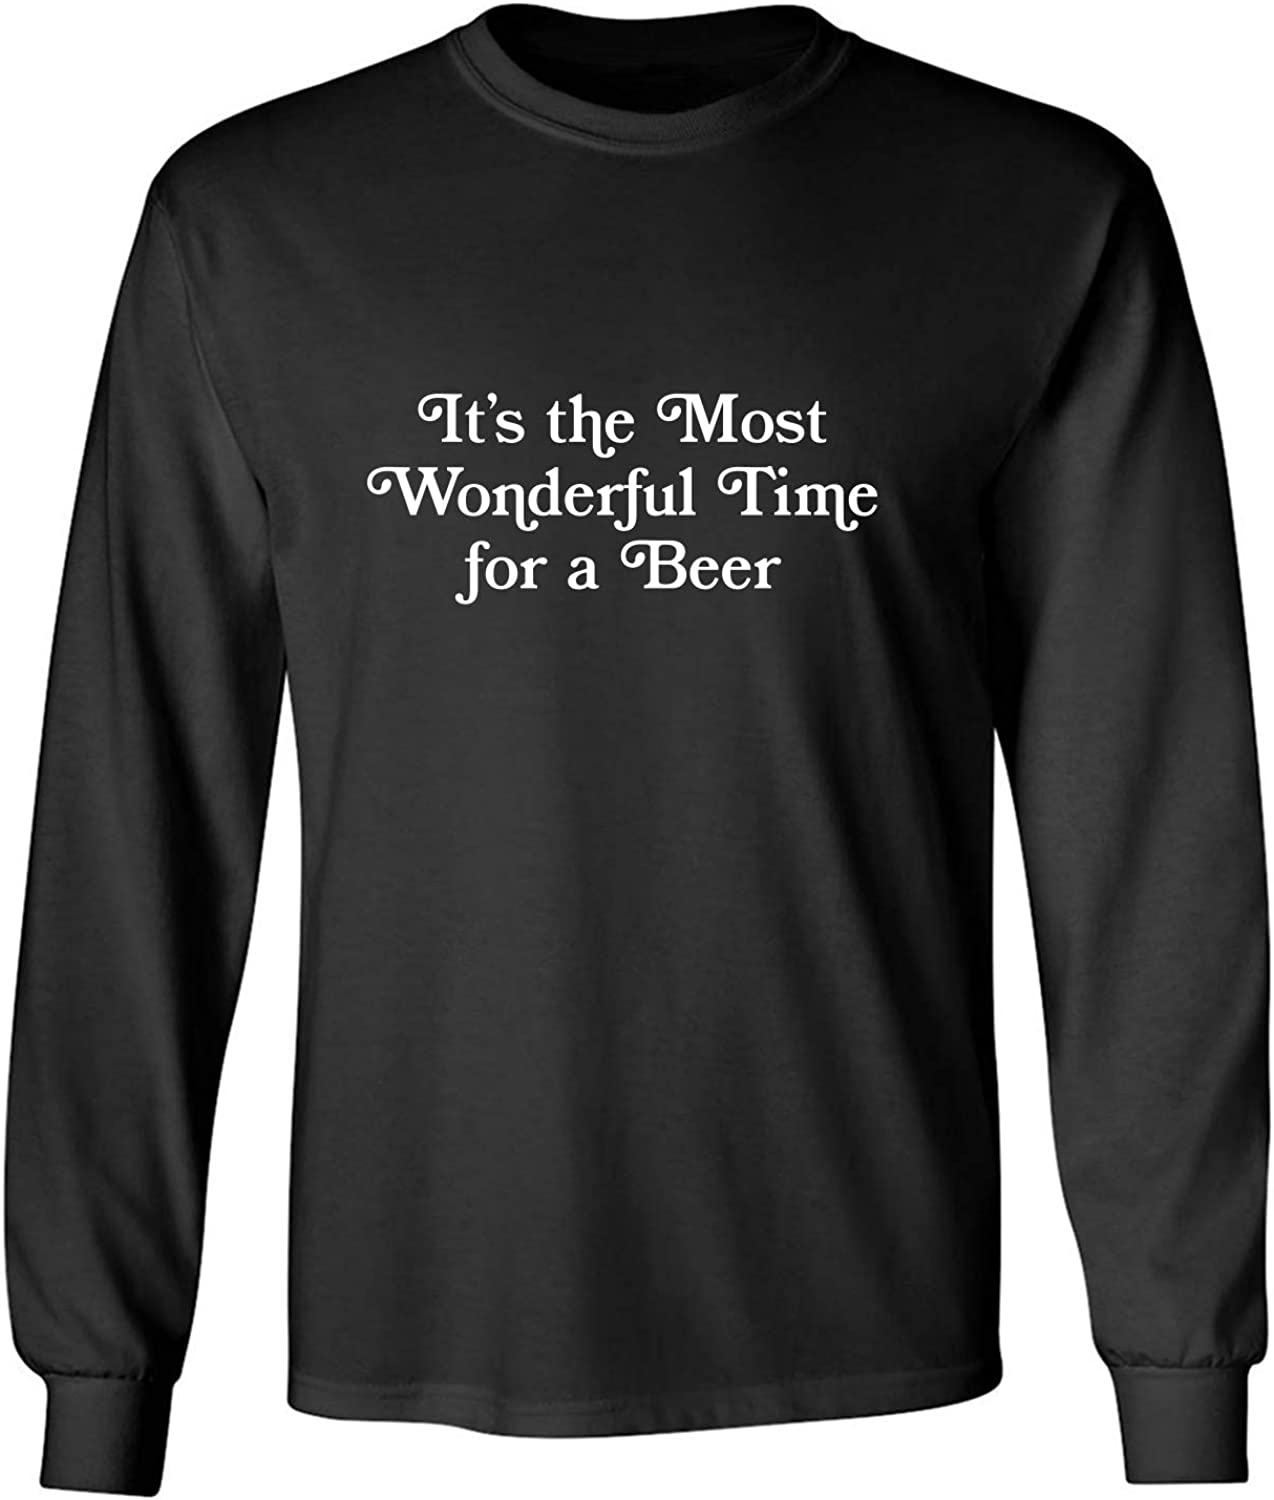 It's The Most Wonderful Time Adult Long Sleeve T-Shirt in Black - XXXXX-Large